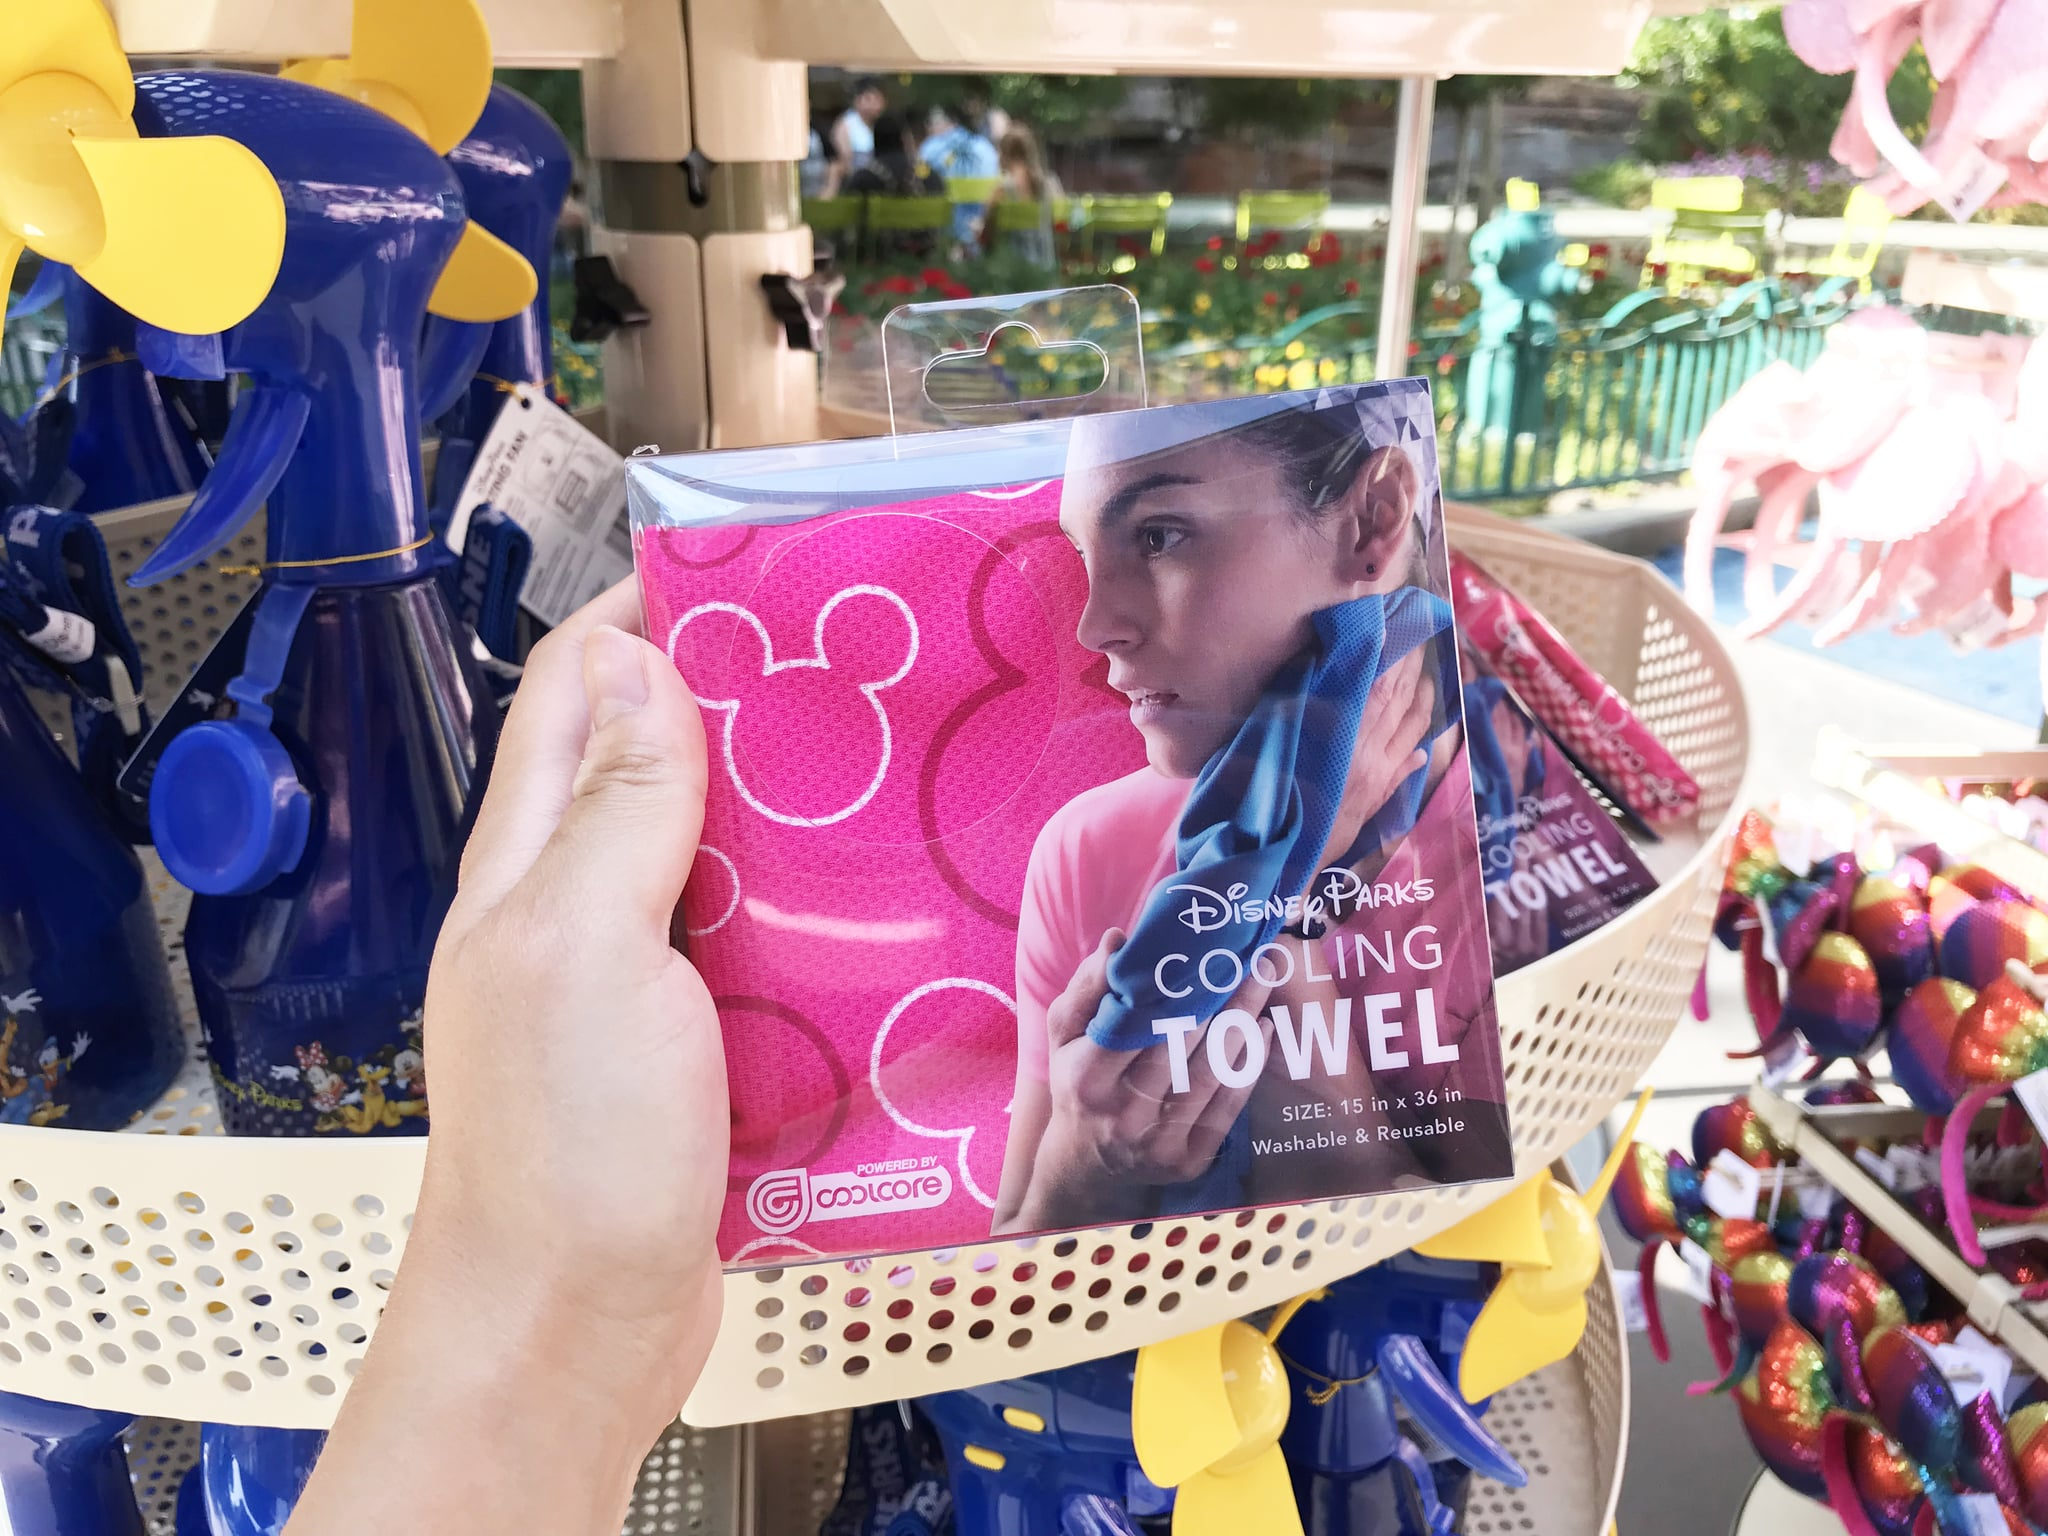 Disney parks cooling towel popsugar moms heres a disney tip for you dont make the mistake of forgetting to check the weather before planning your visit to disneyland like i did publicscrutiny Image collections